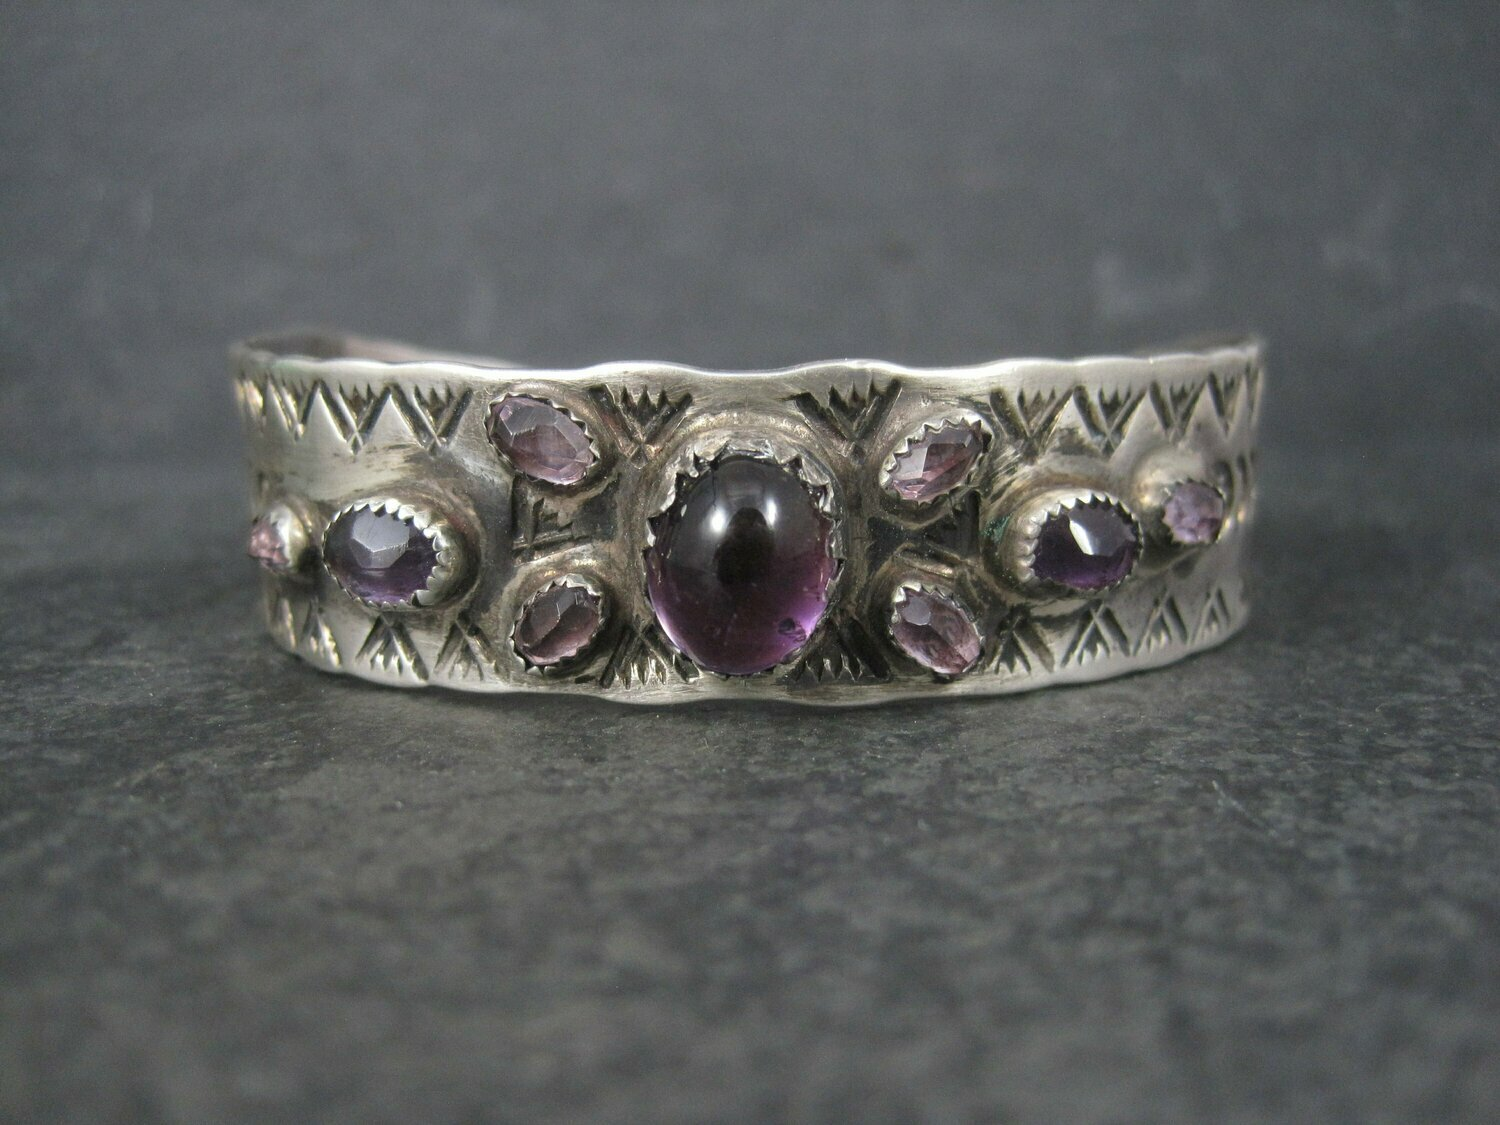 Vintage Southwestern Sterling Amethyst Cuff Bracelet 6.5 Inches